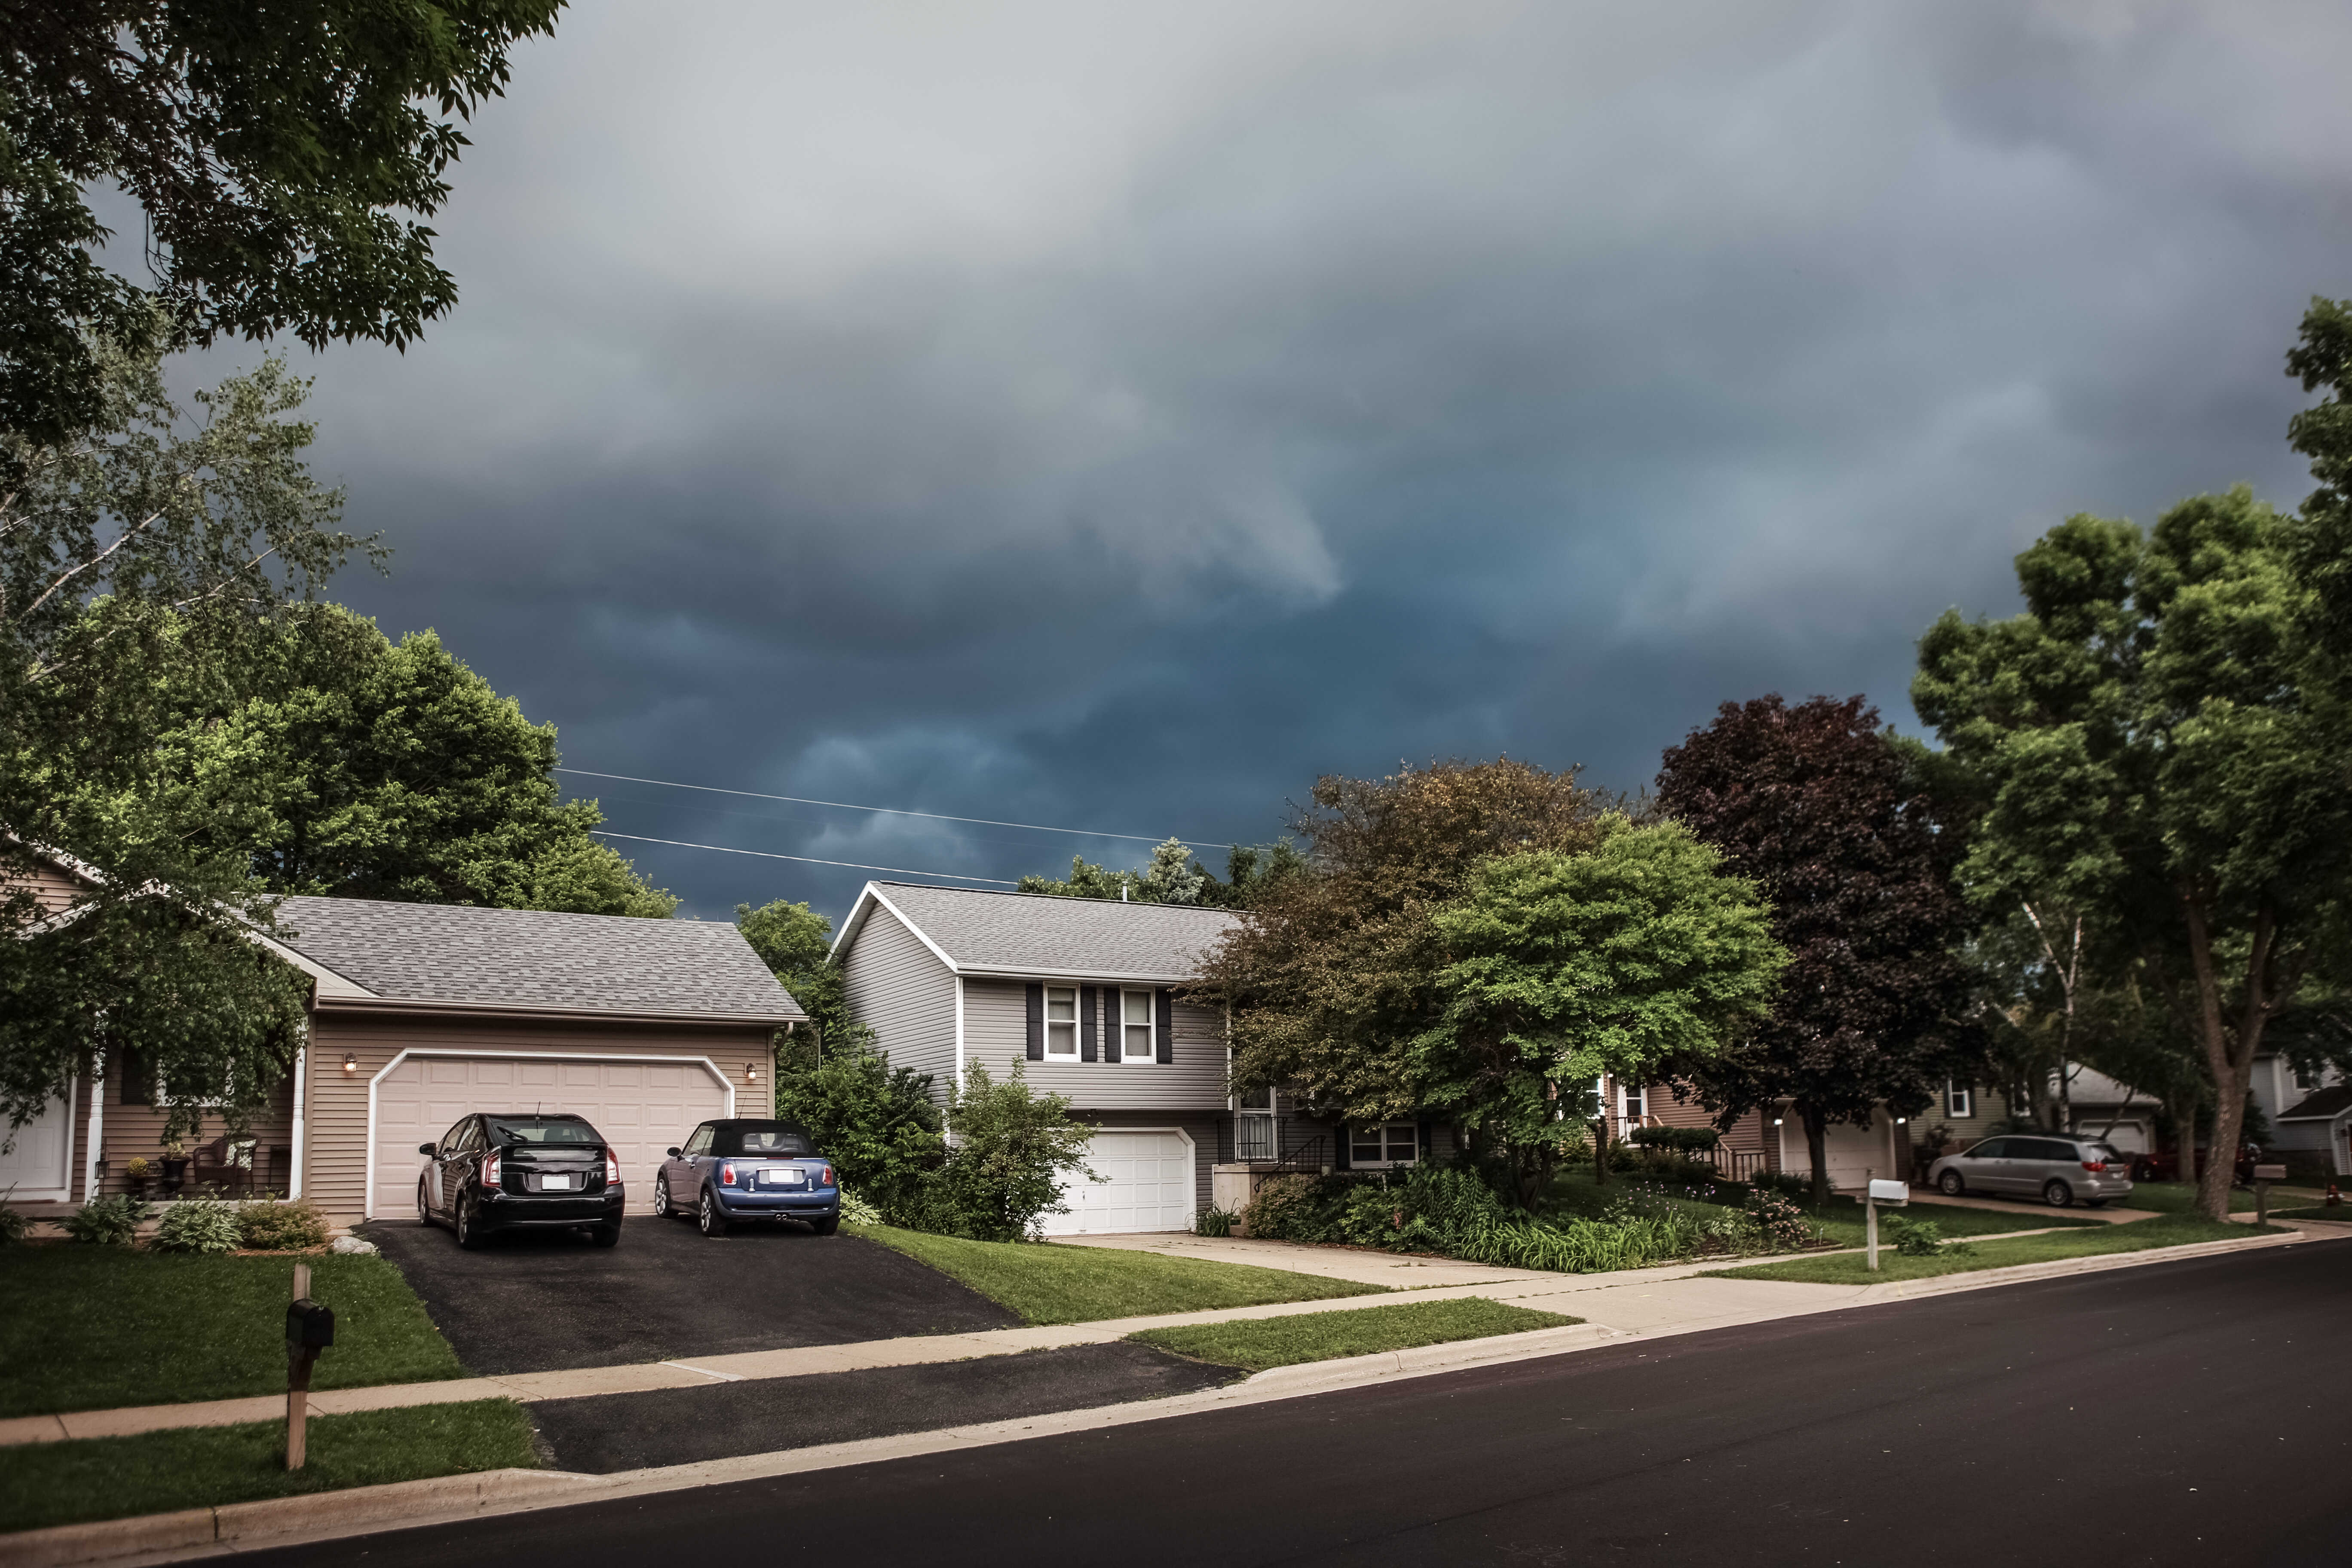 Severe Weather, Thunderstorms, Storm Approaching